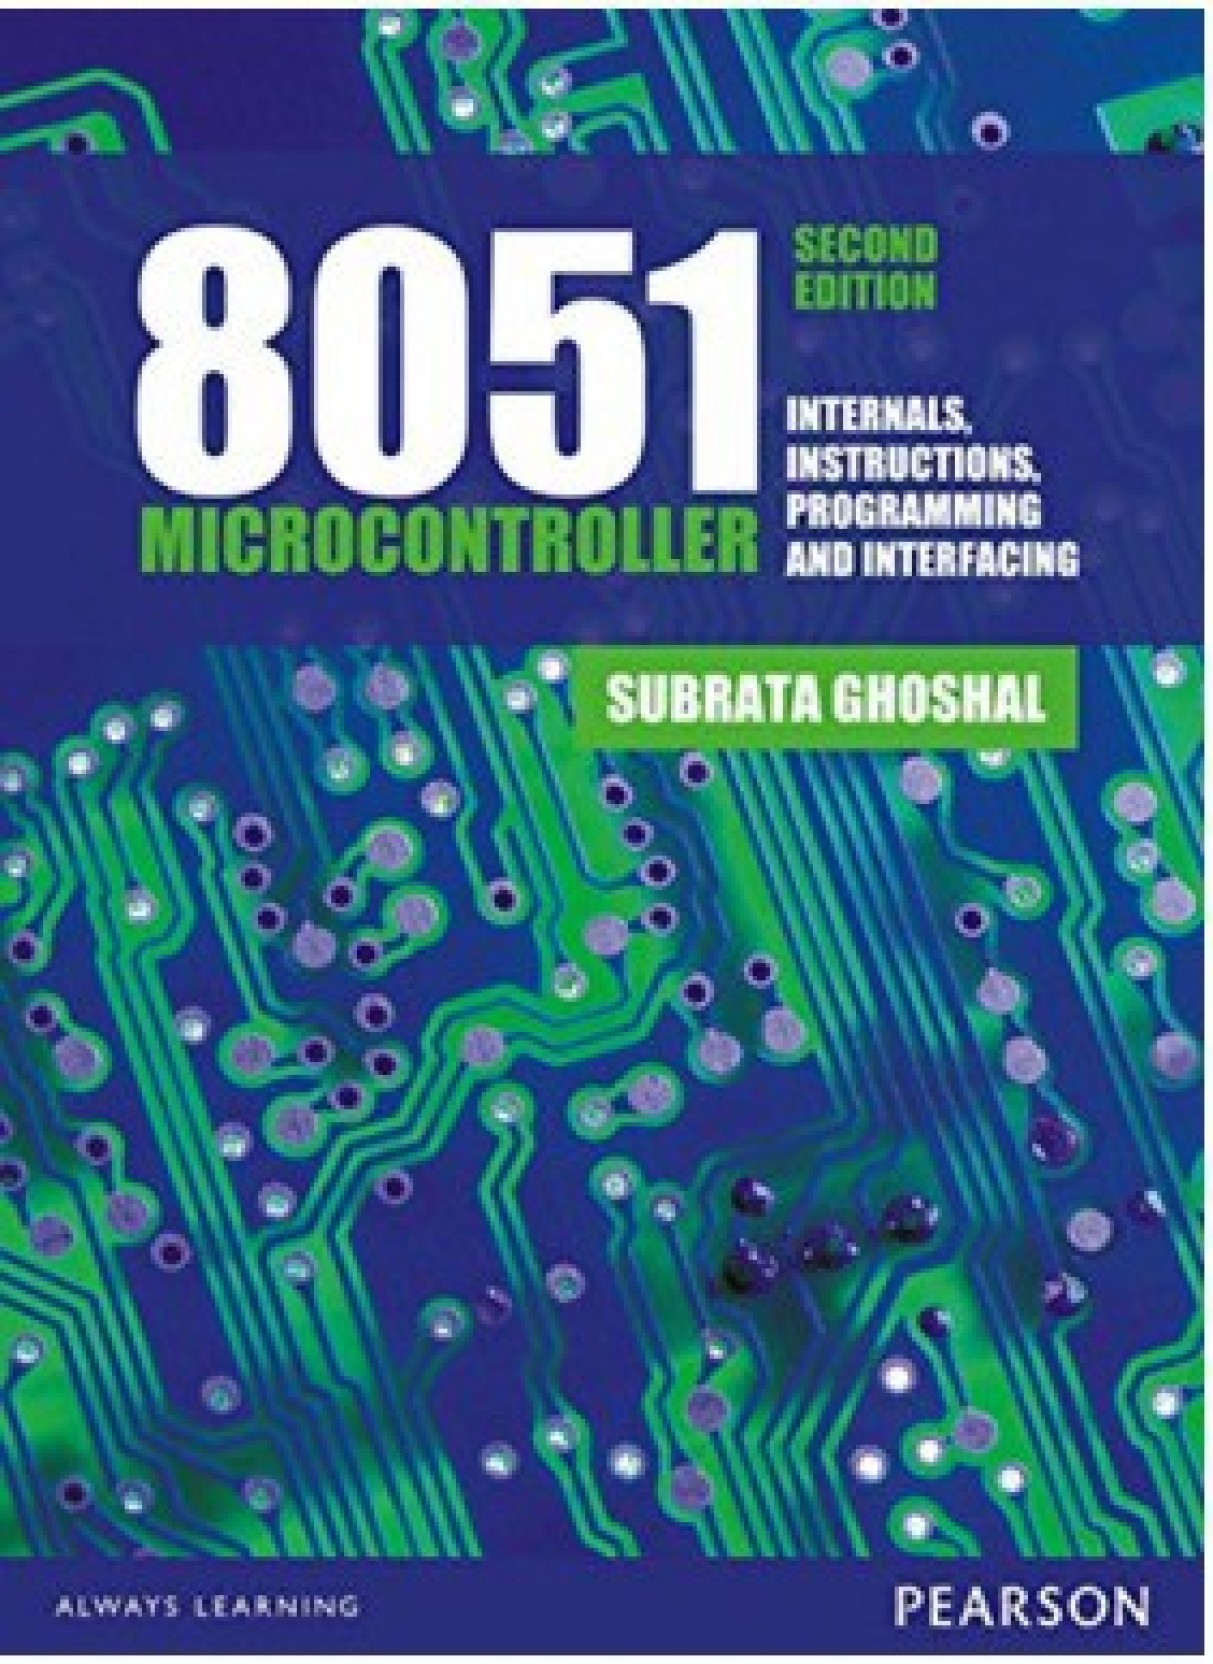 8051 Microcontroller Internals Instructions Programming And Addressing Modes Add To Cart